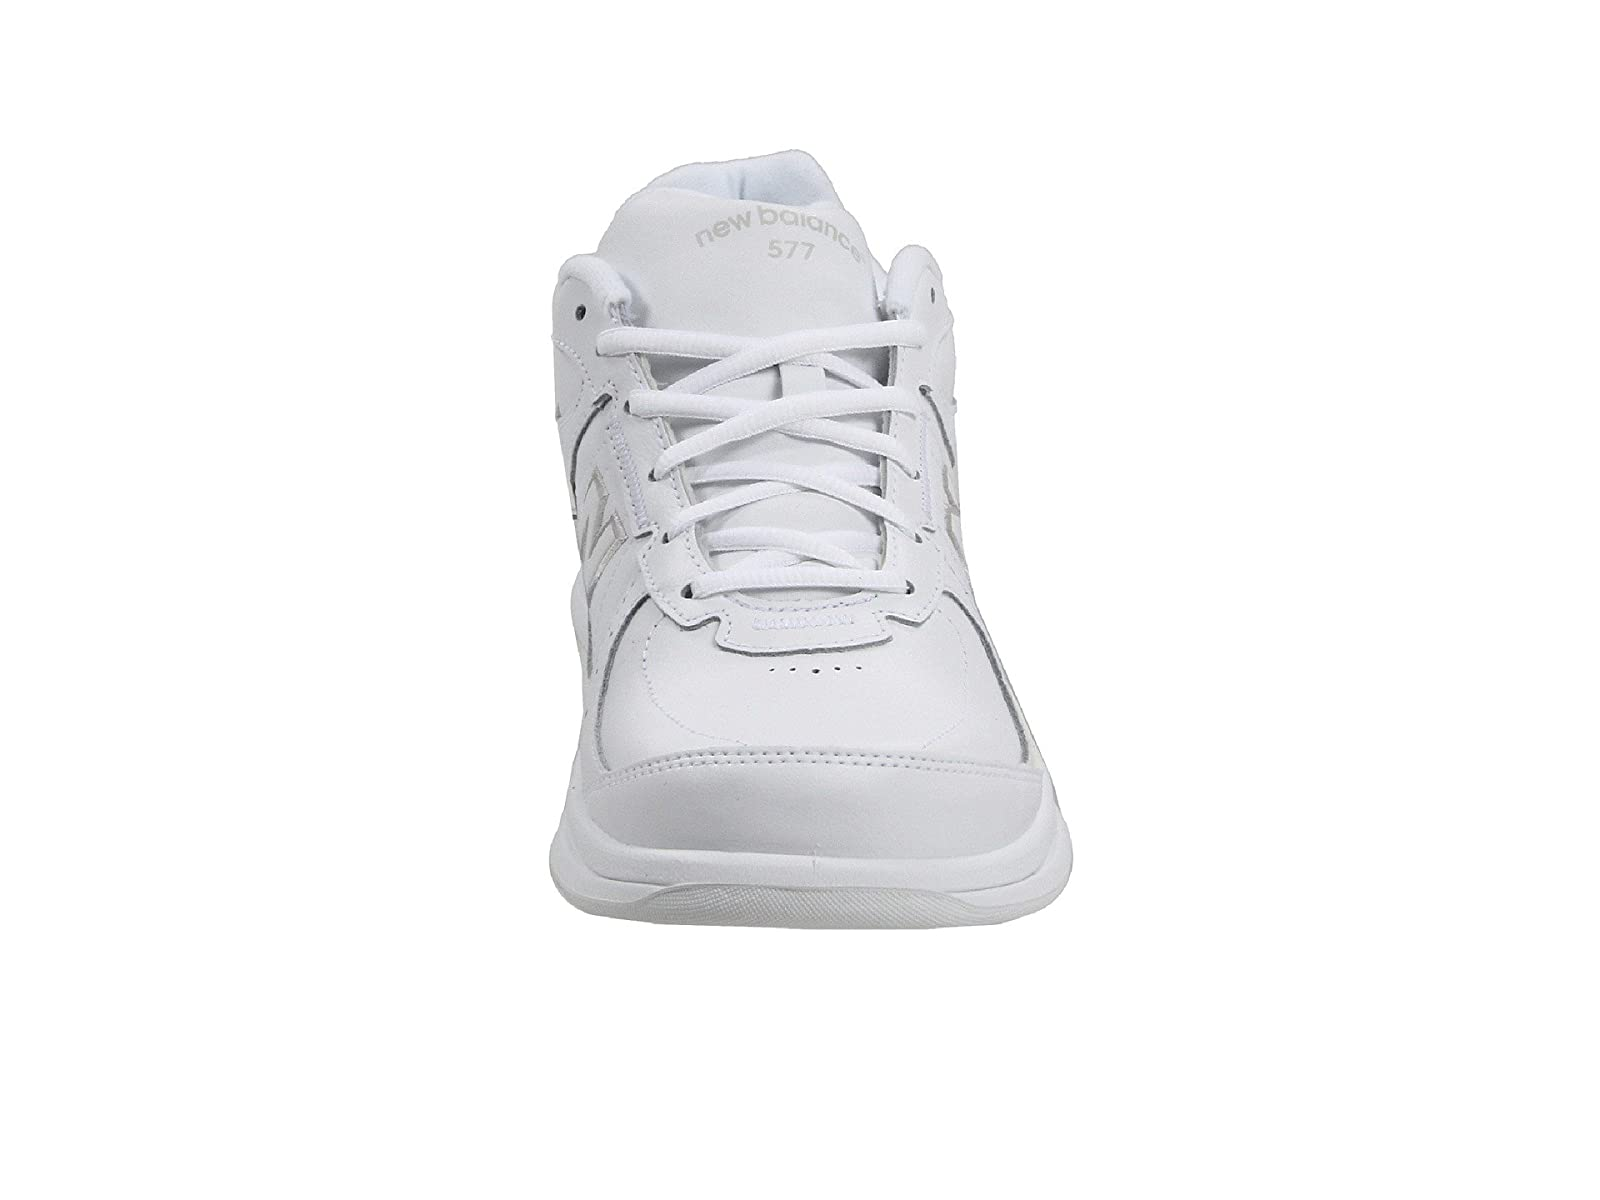 Man-039-s-Sneakers-amp-Athletic-Shoes-New-Balance-MW577 thumbnail 15